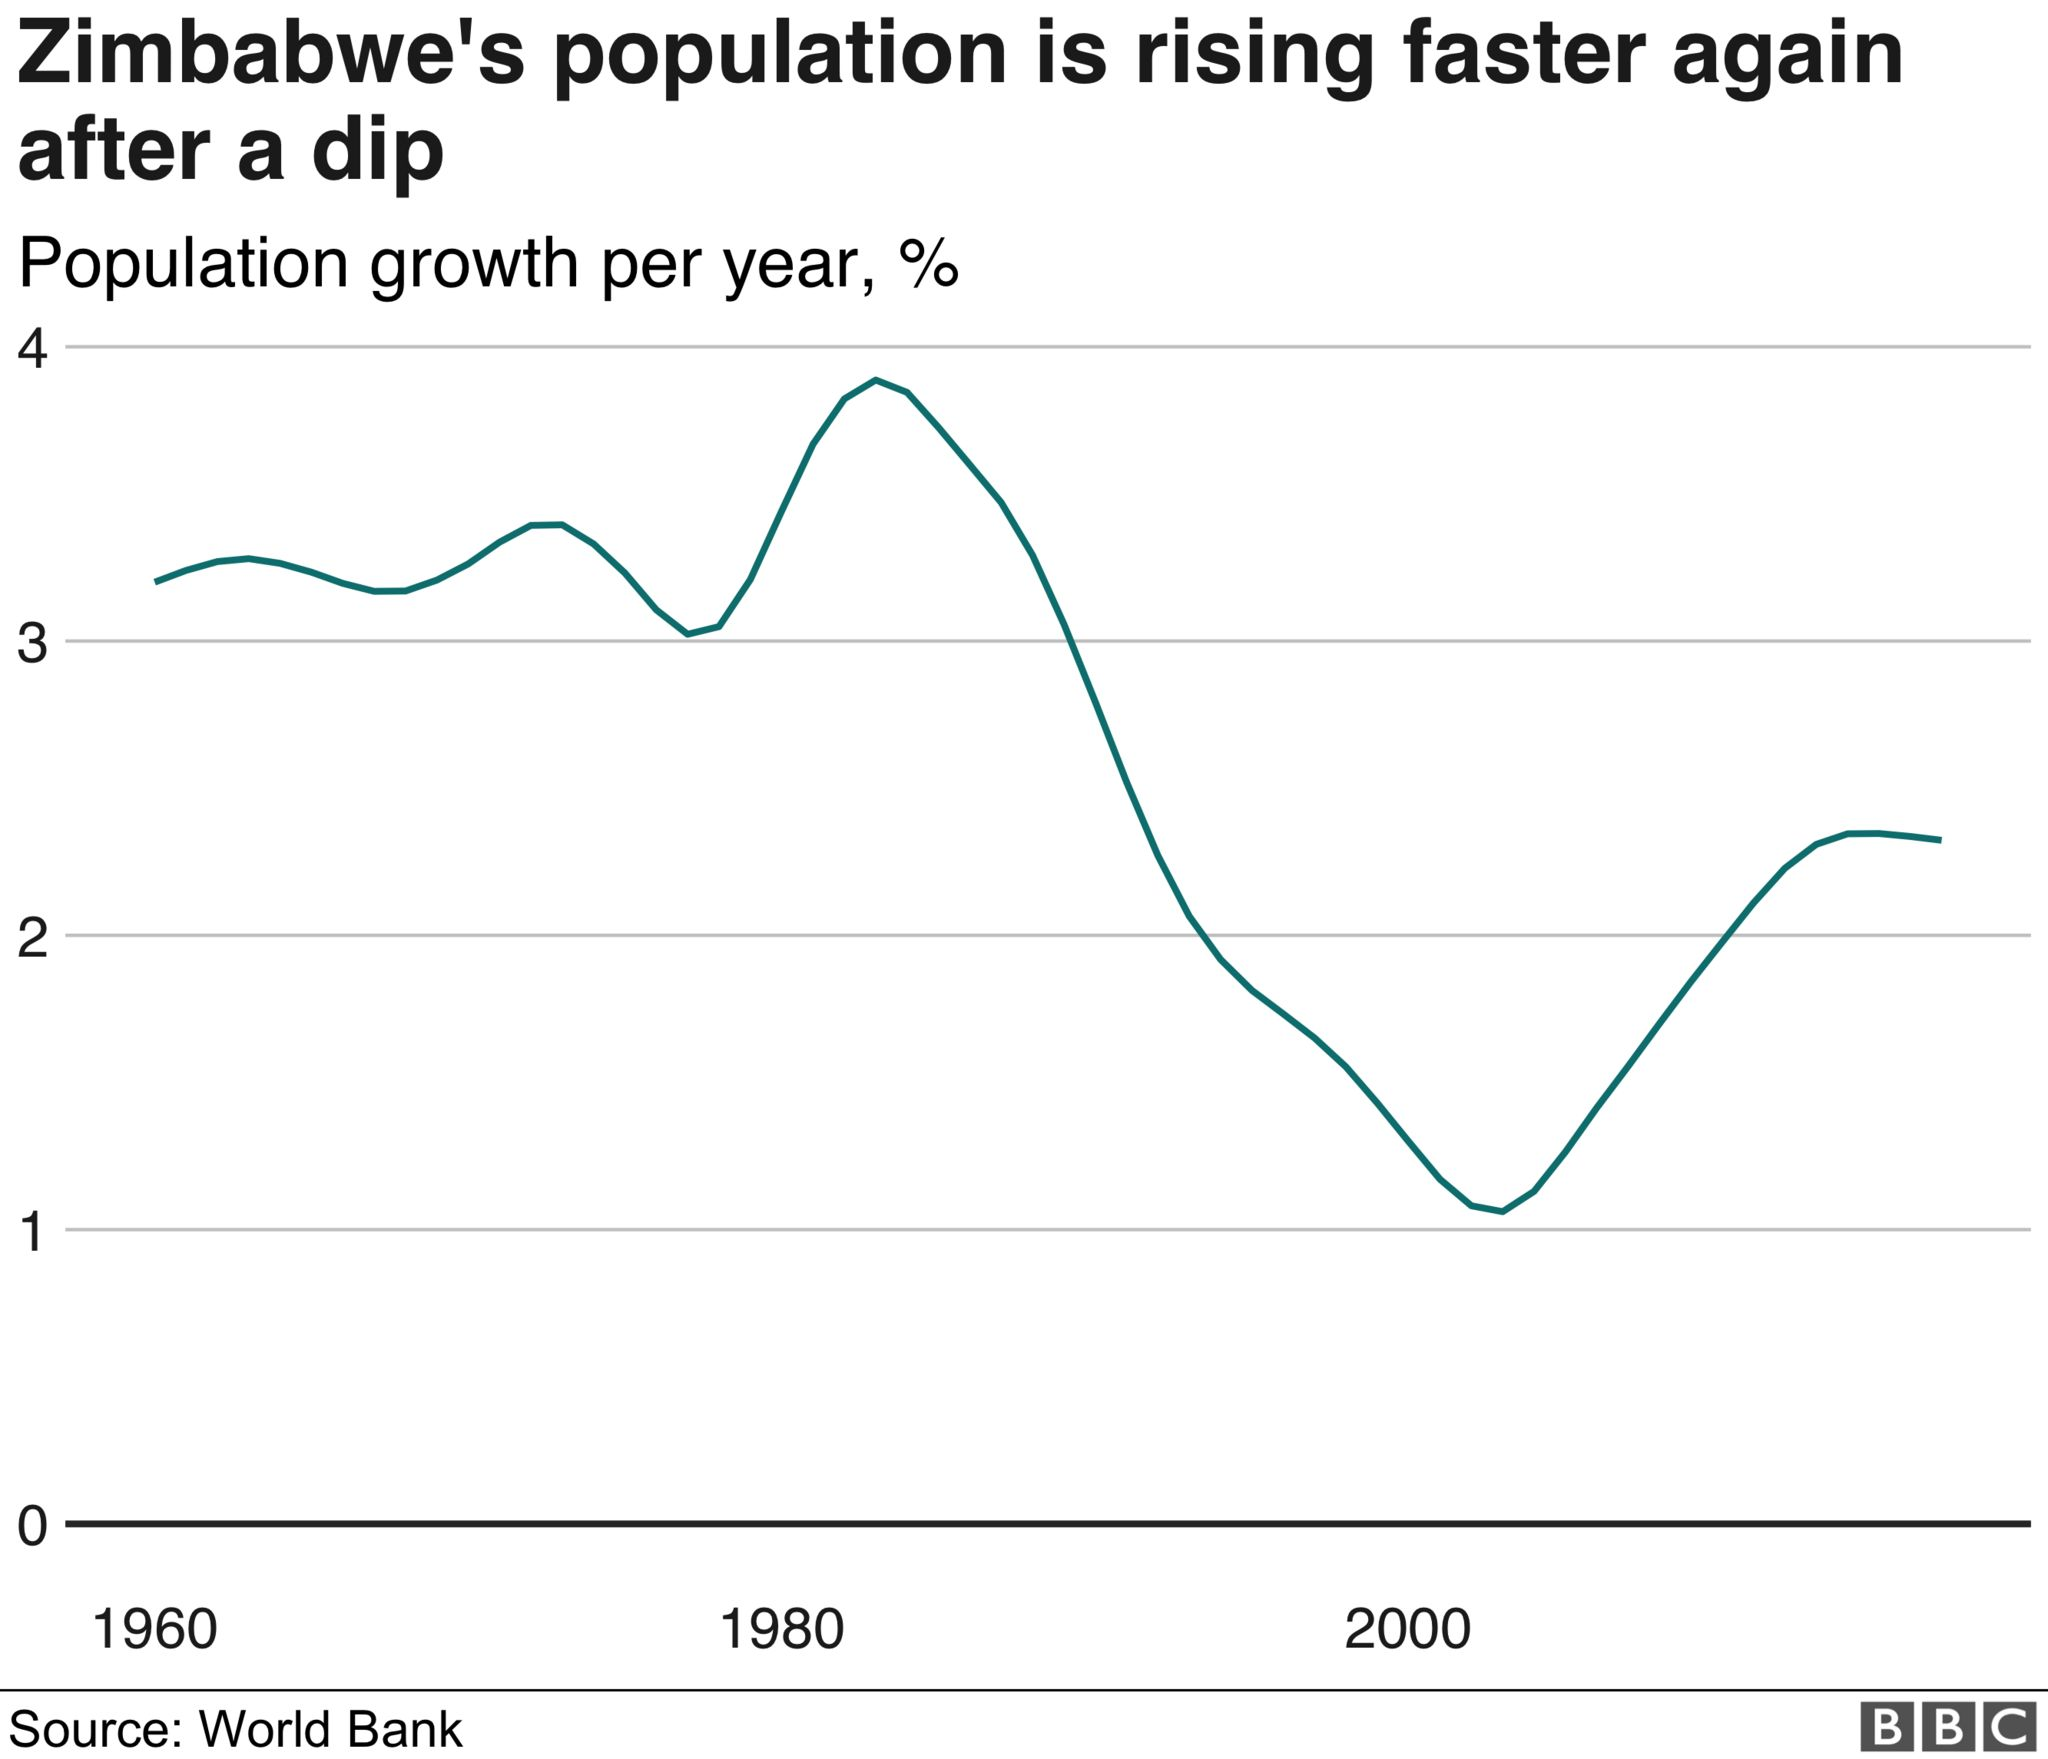 Chart showing how Zimbabwe's population is growing again at a rate just under 2.5% per year, following a period when it was as low as 1% in the early 2000s